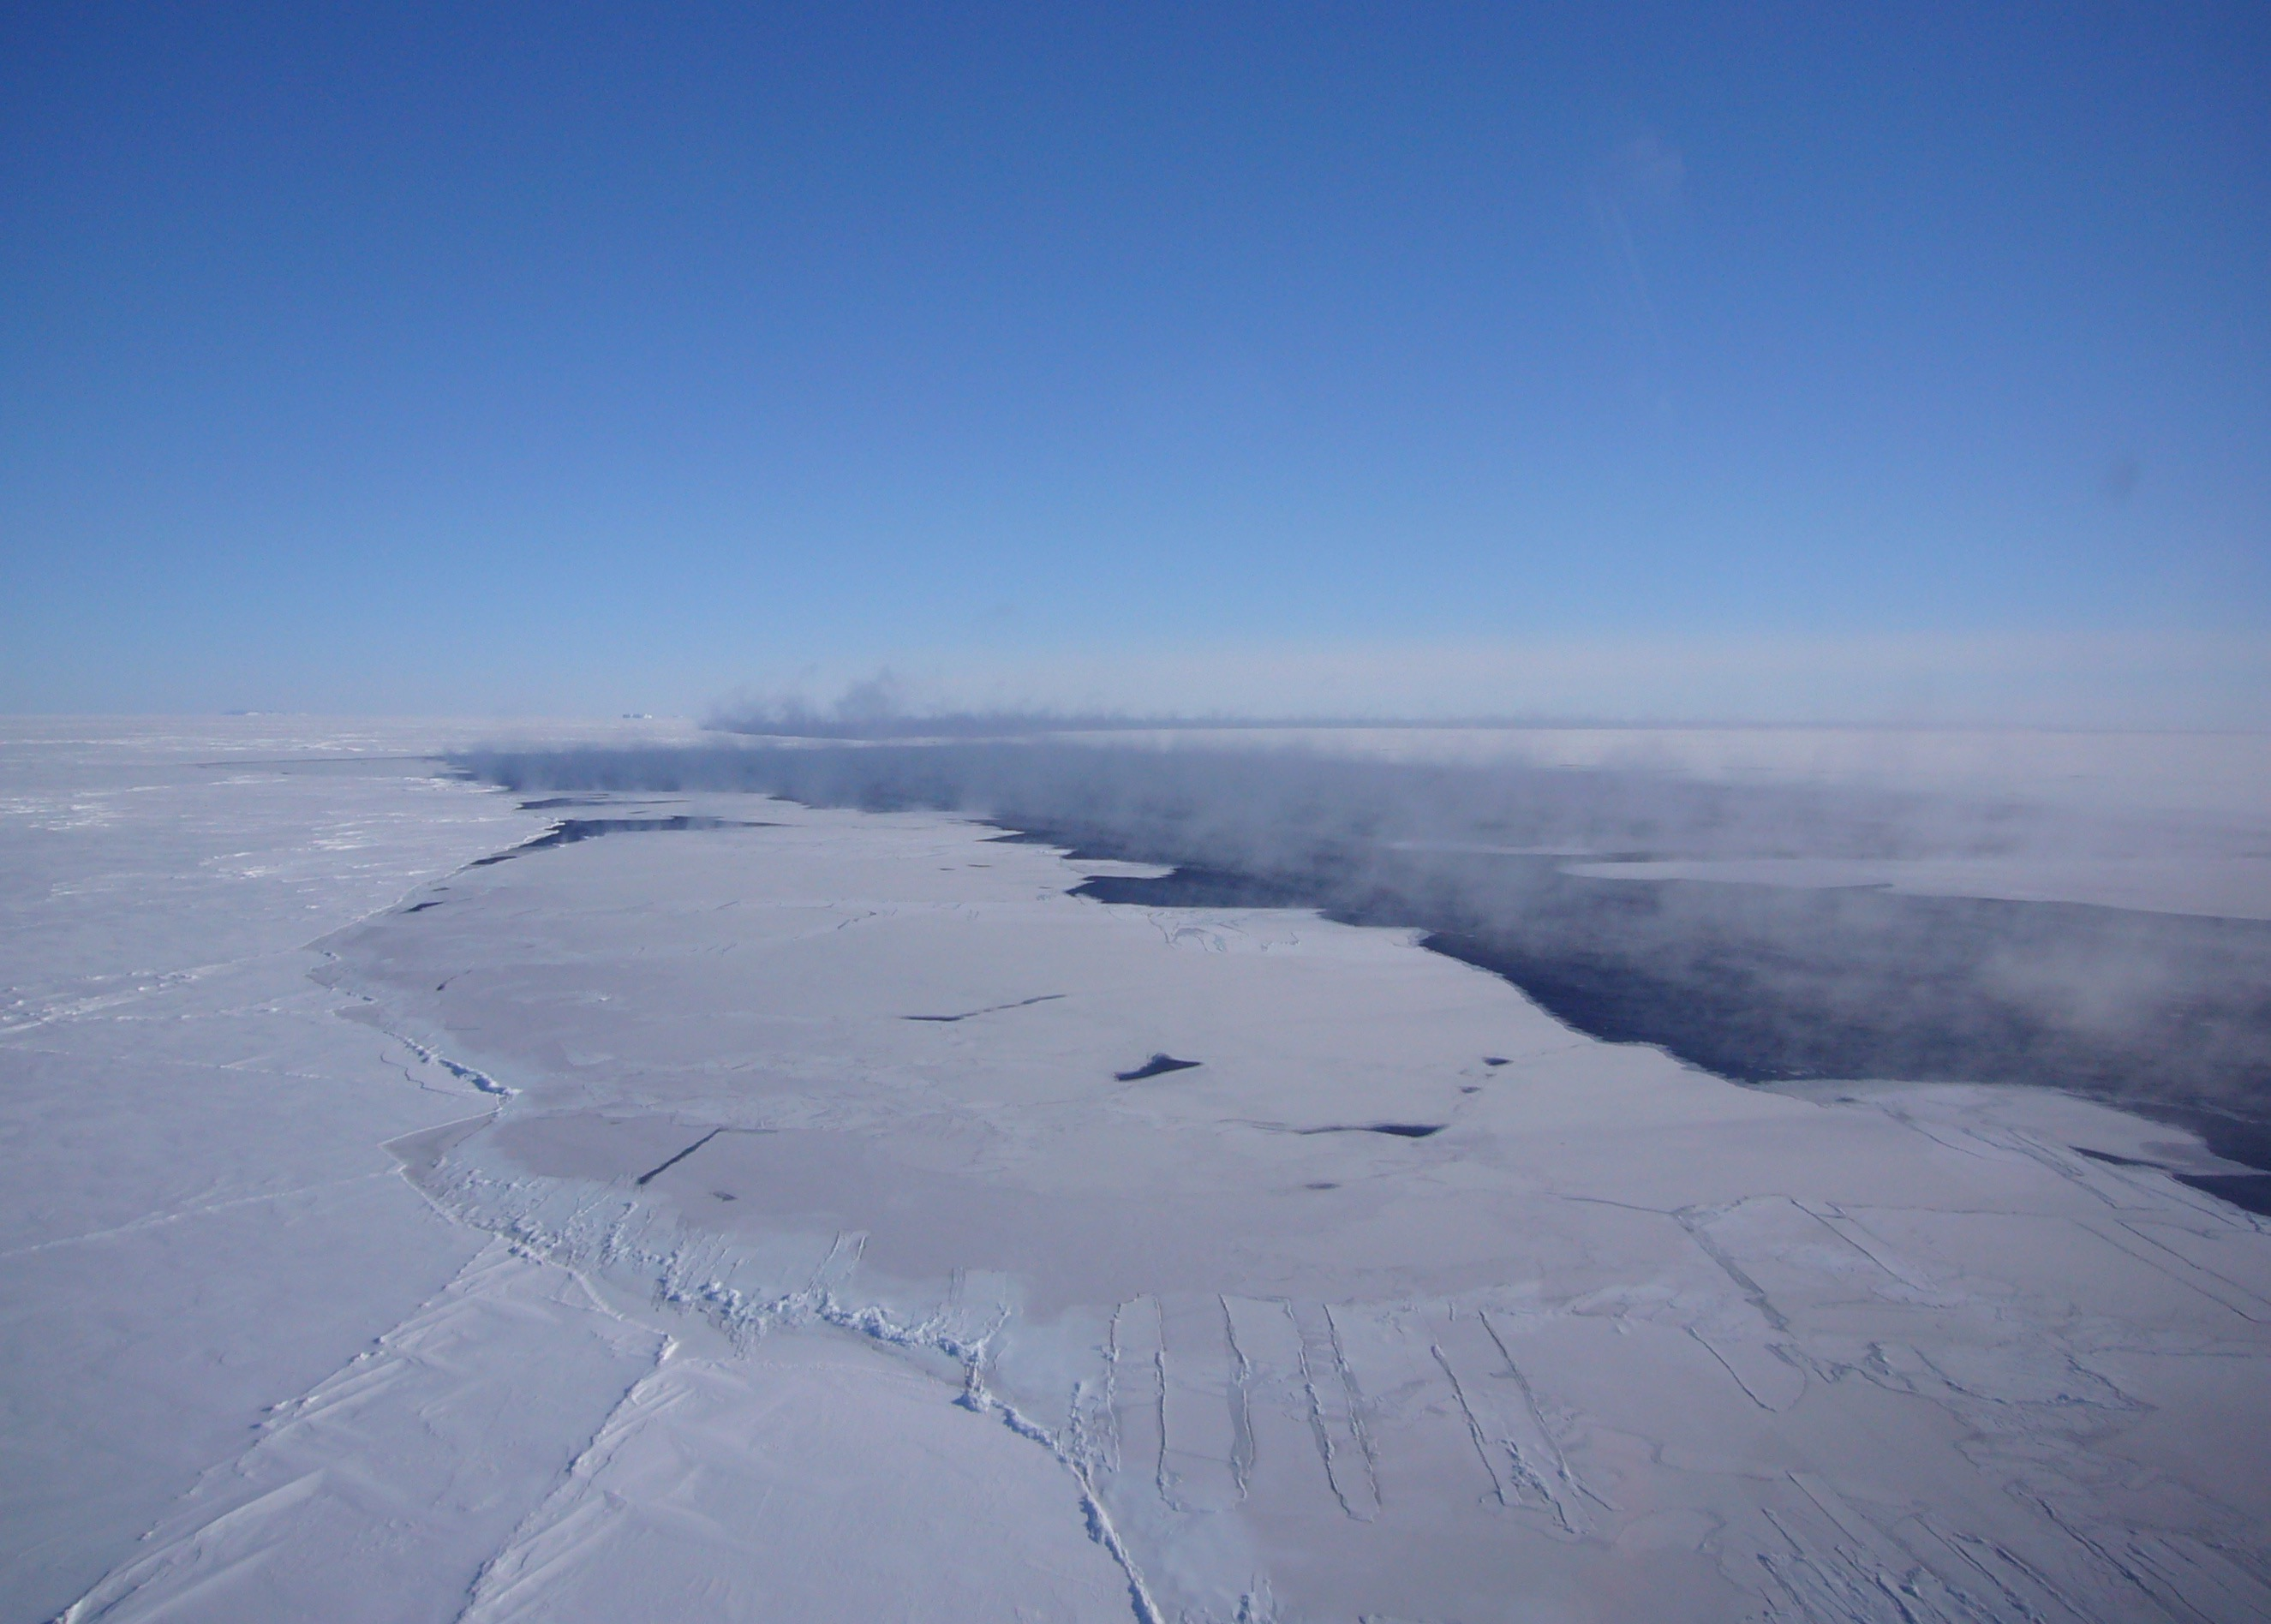 Aerial View of the Polynya in the Southern Ocean